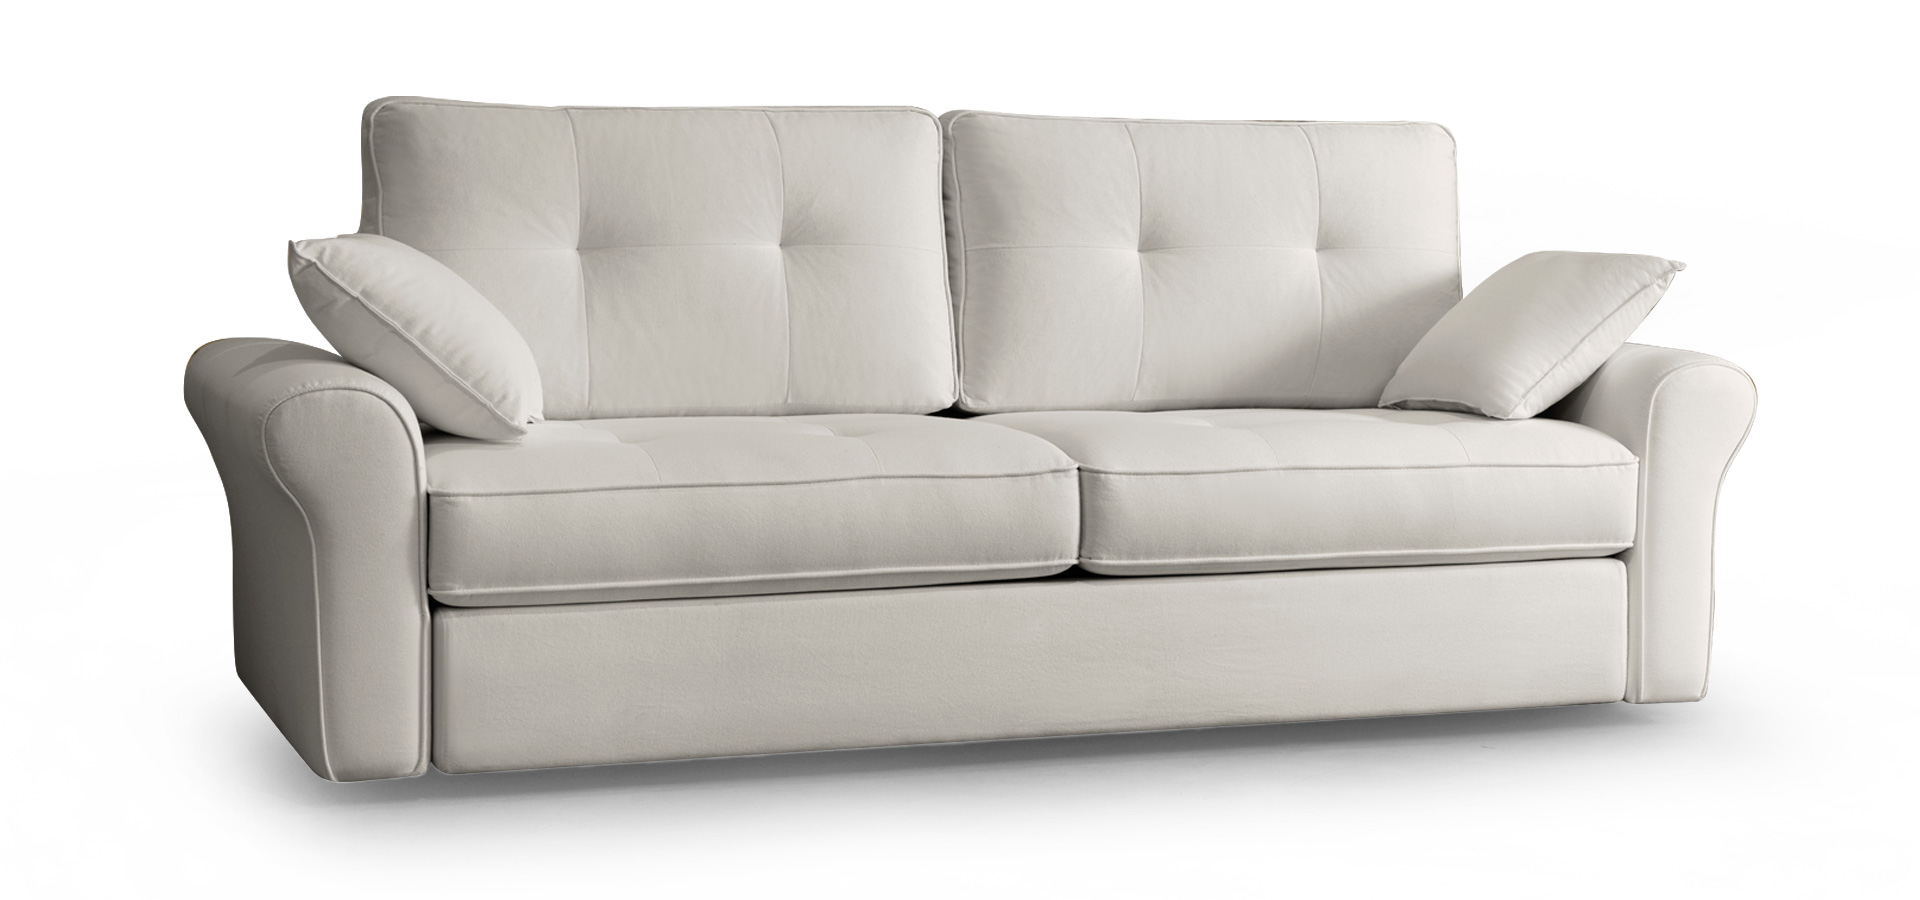 Domingo.Contract.DivanolettoSeatersofa_LAB2_EWALD_Bianco